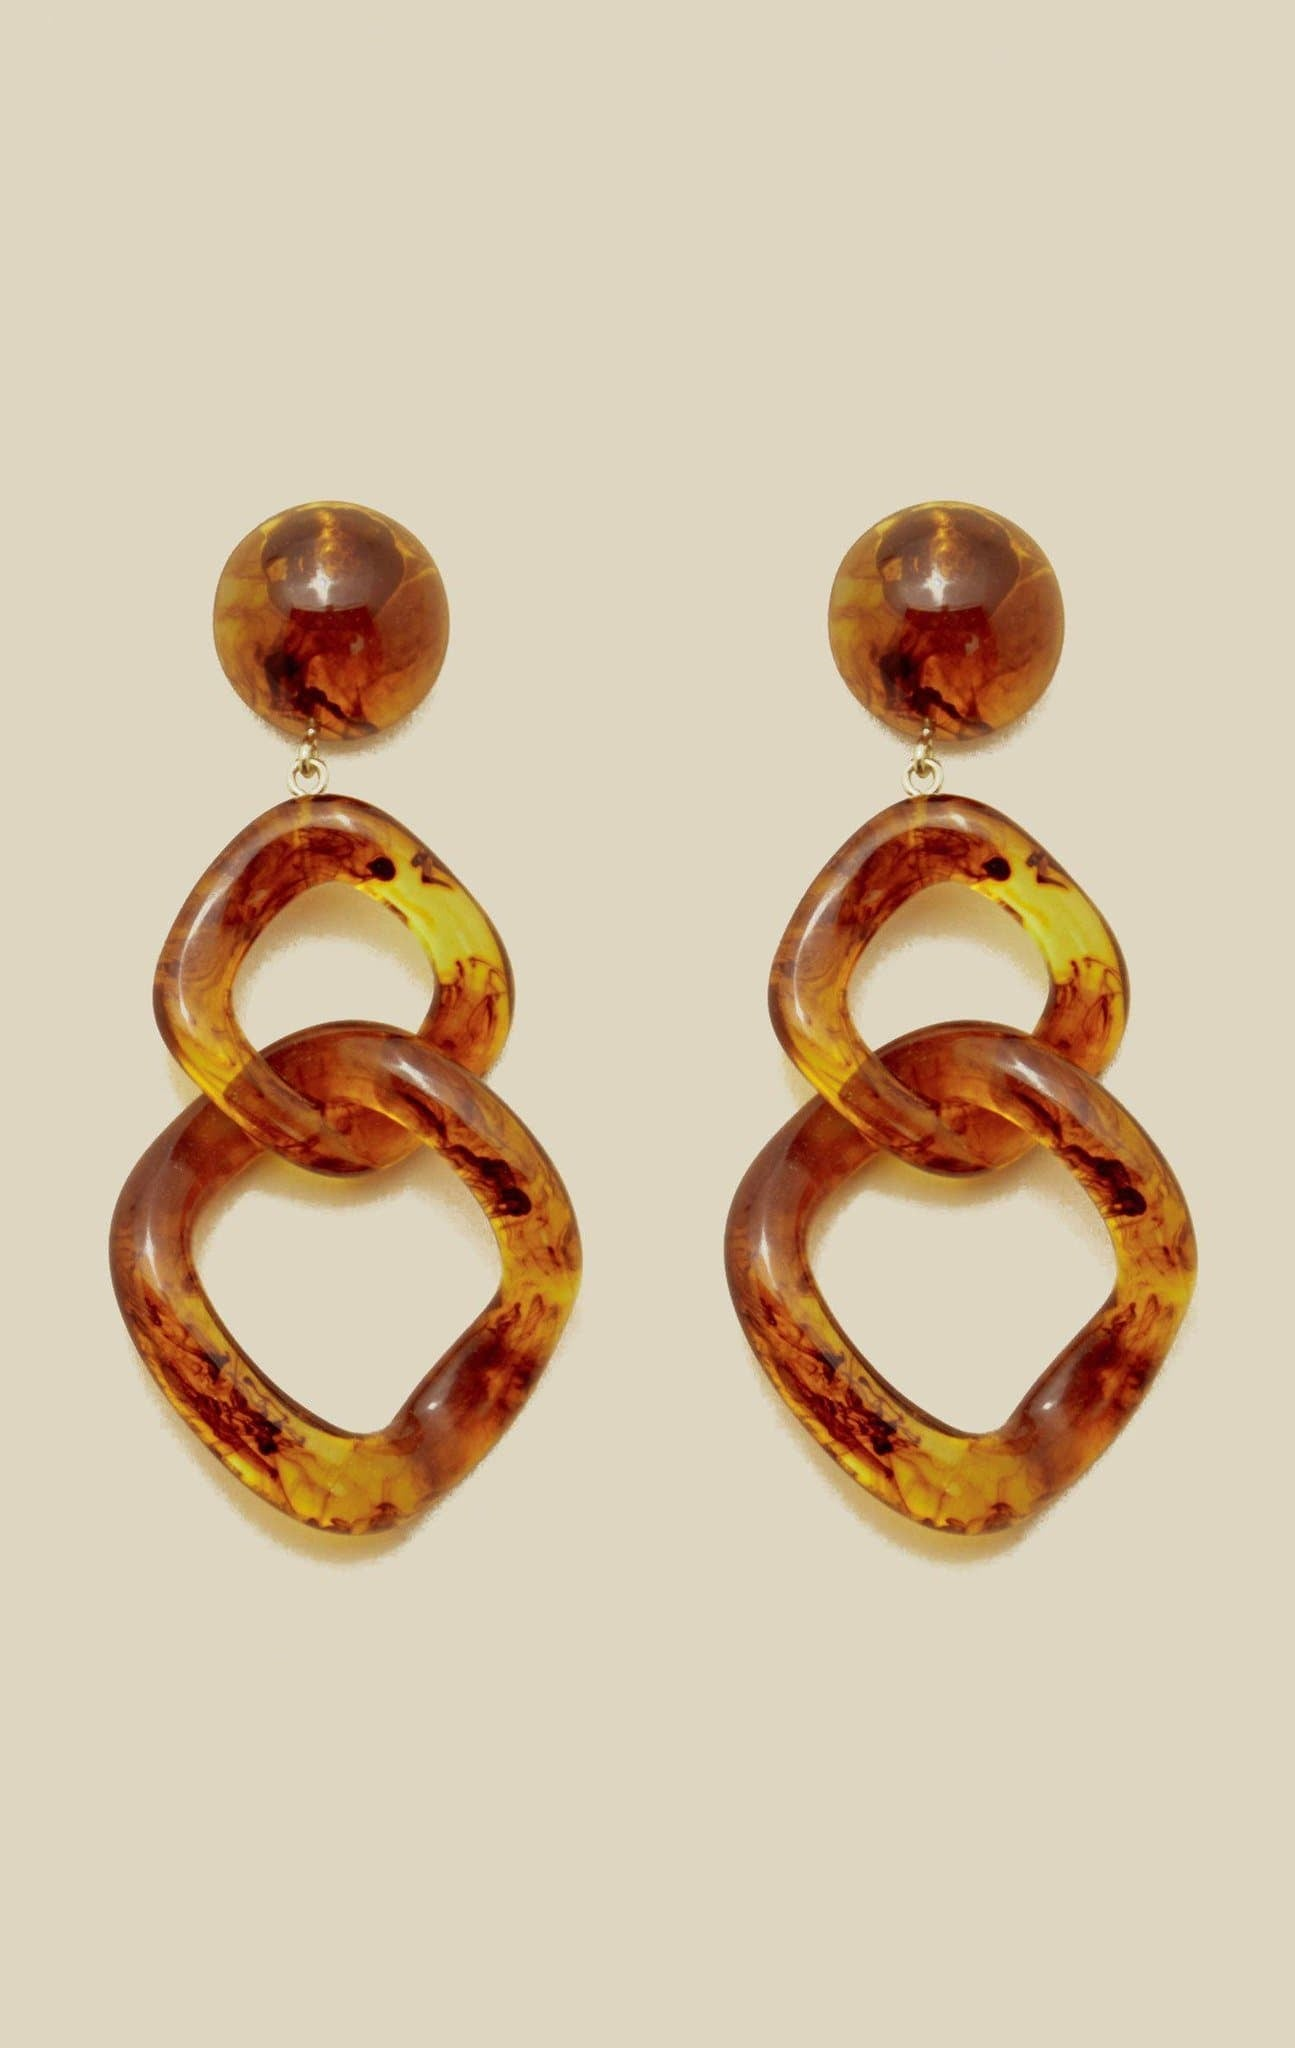 VALET TAMARA EARRINGS - TORTOISE